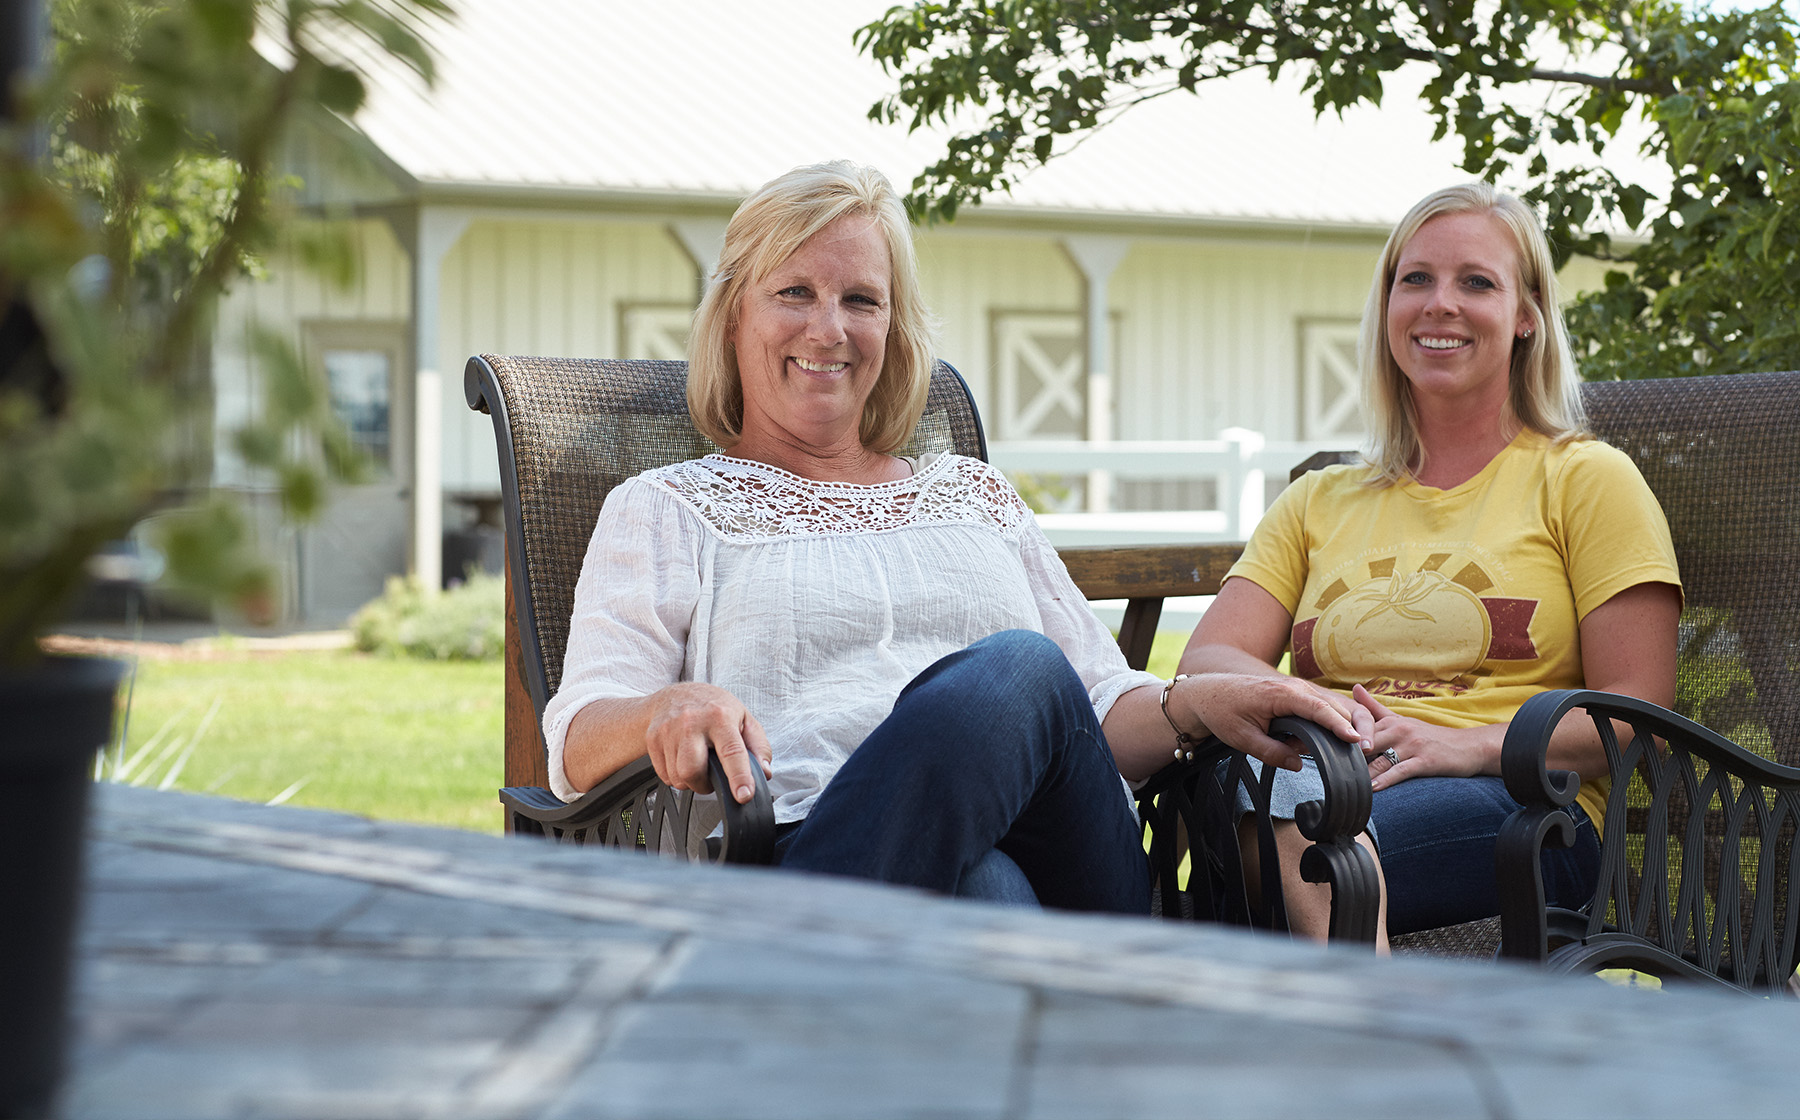 Image of Keesling Farms Growers for Red Gold Tomatoes Kim and daughter Kaycie in chairs outside with barn in background